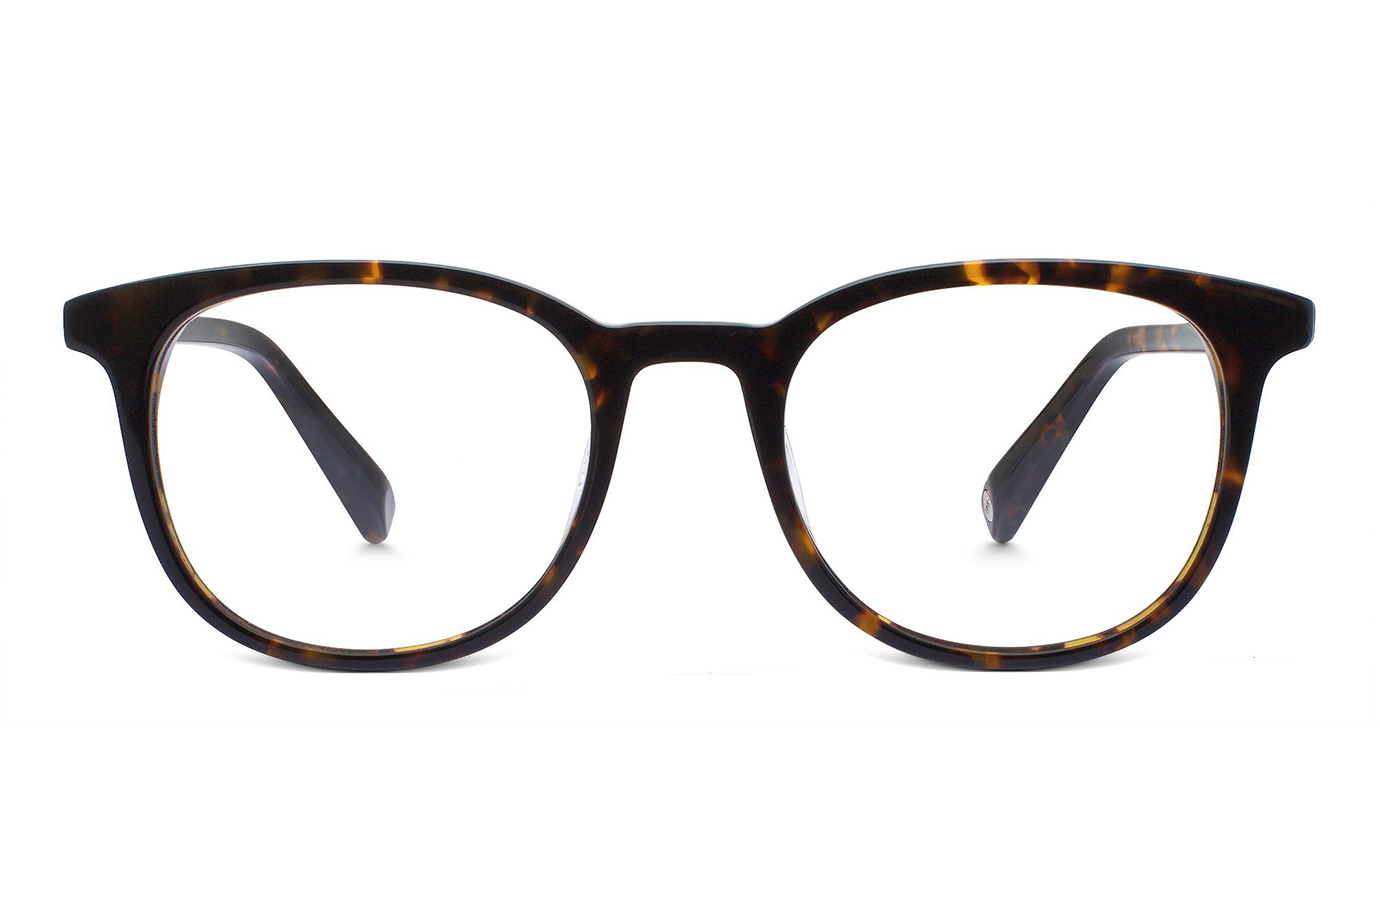 Stylish Glasses for Under $100 You Can Buy Online